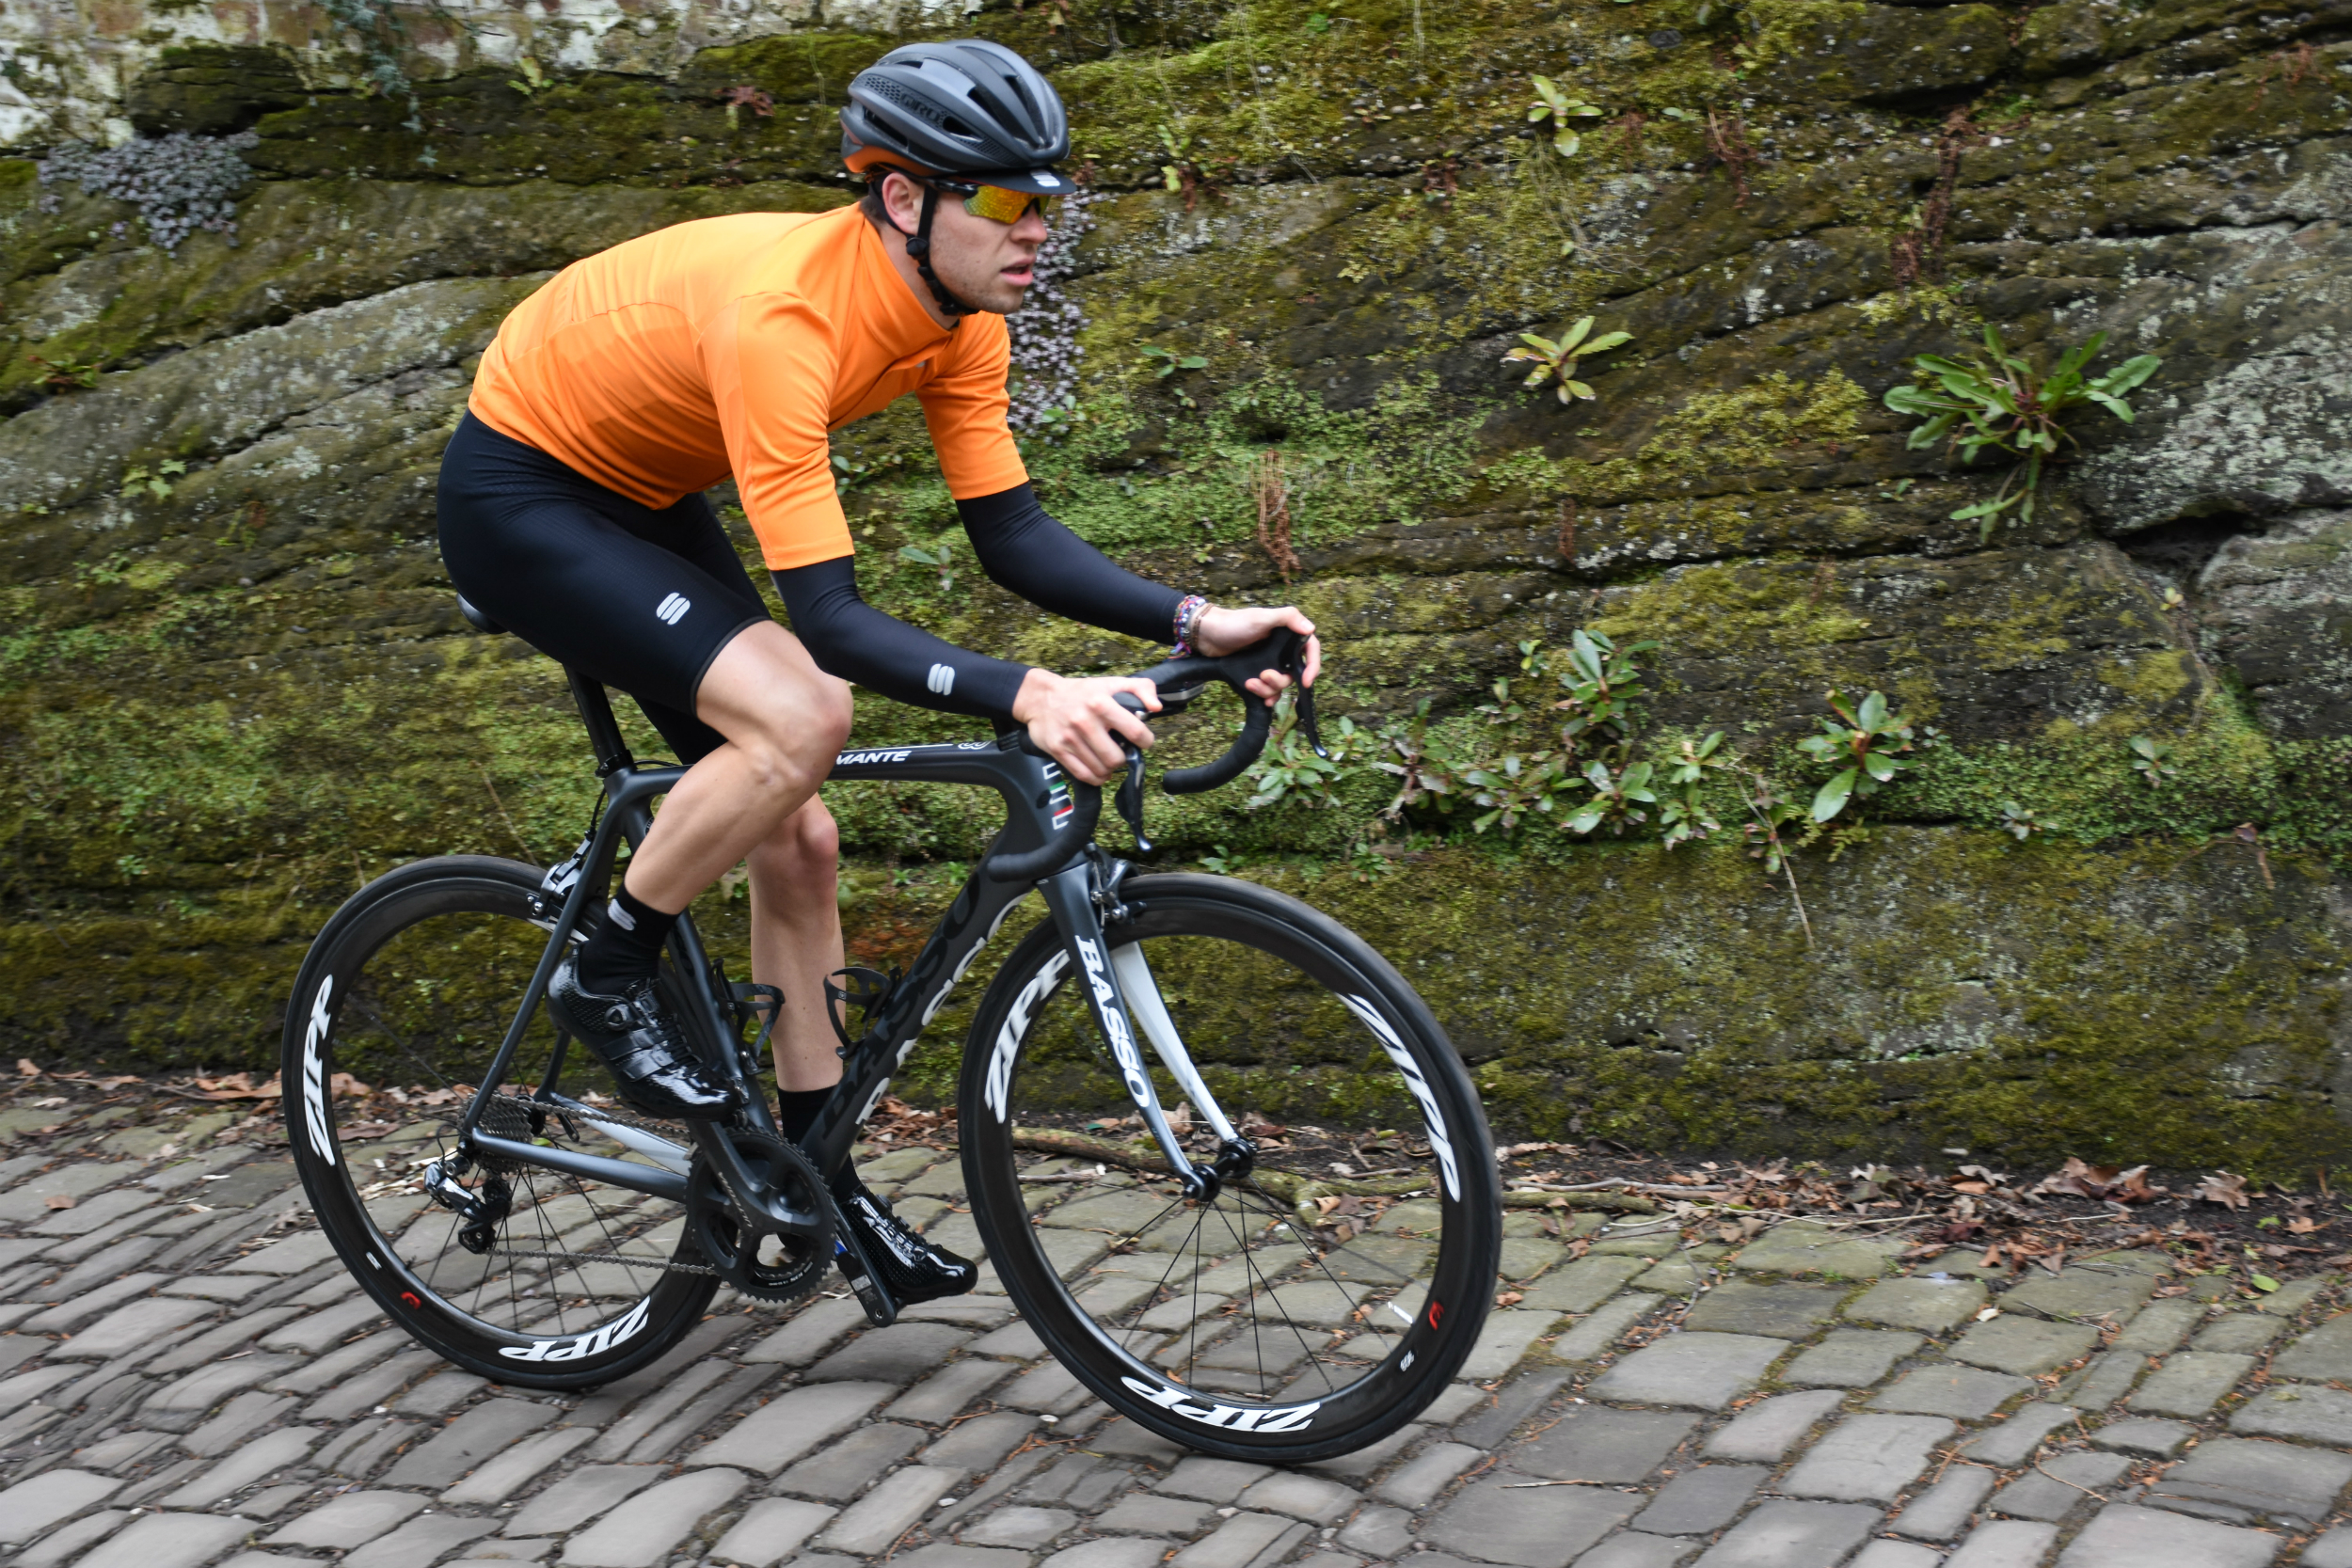 a cyclist riding on cobbles in the fiandre light jersey in bright orange